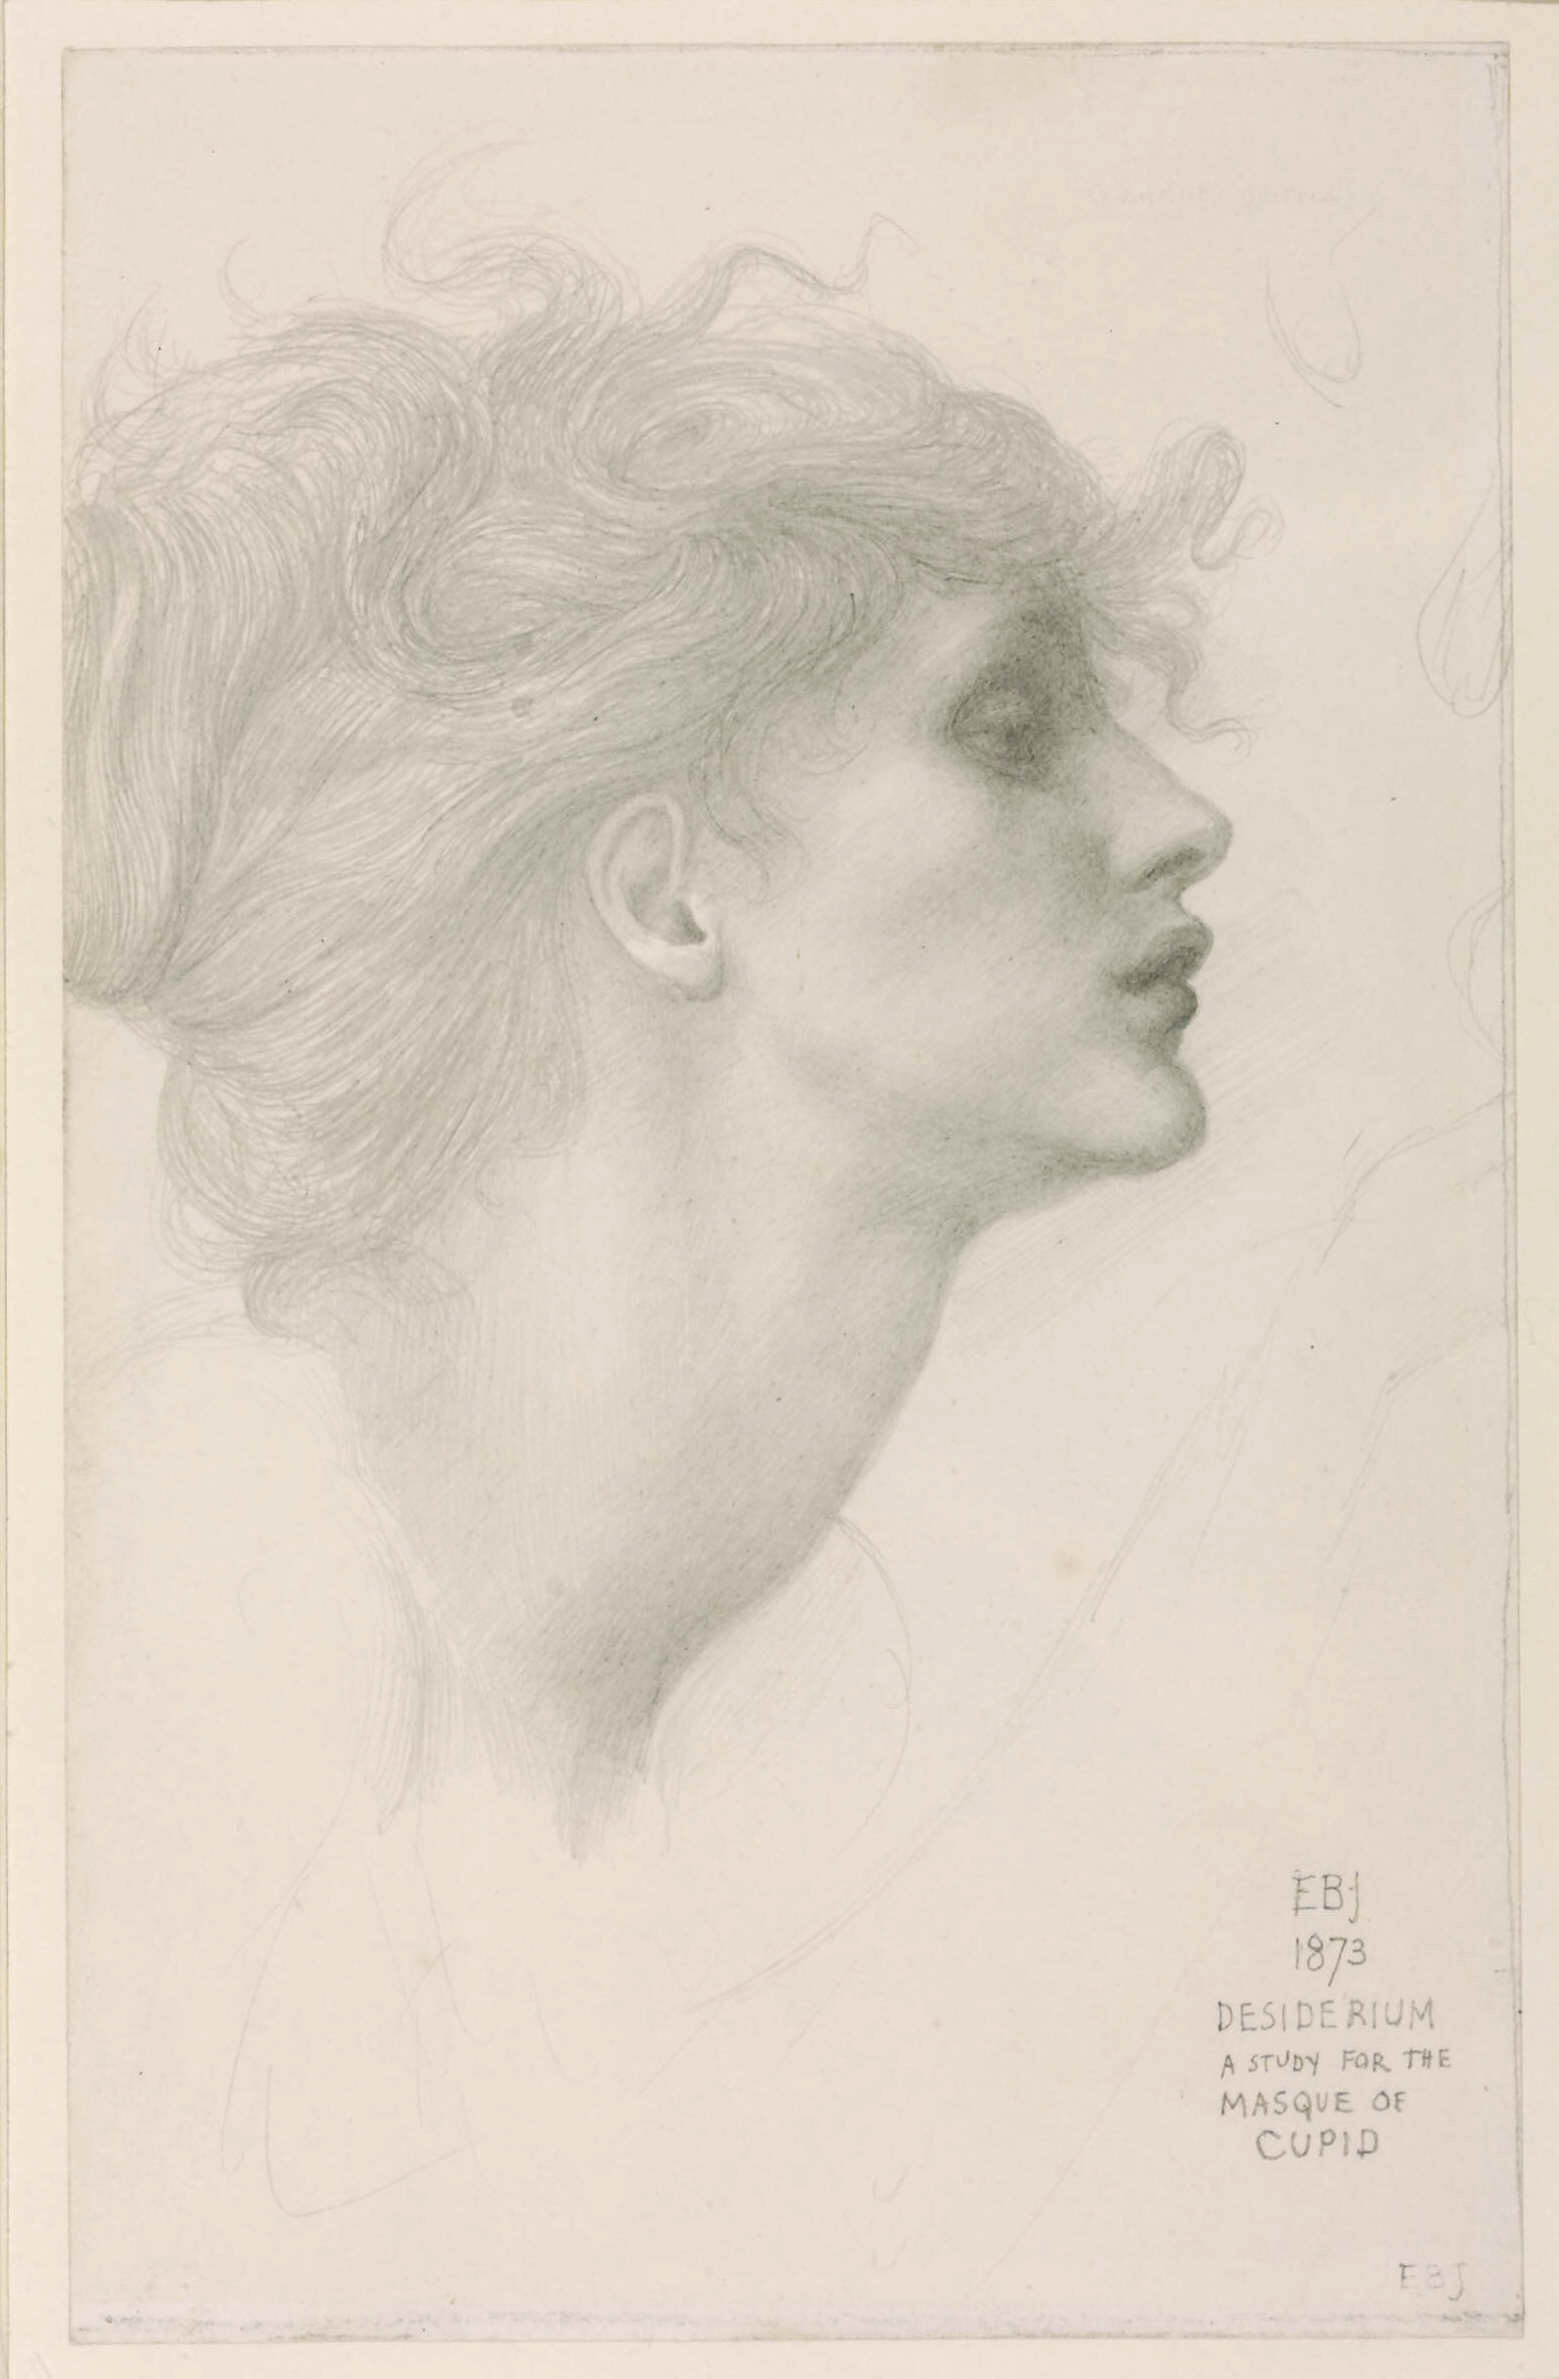 Desiderium, 1873, graphite on paper, 21 x 13 cm (Tate)